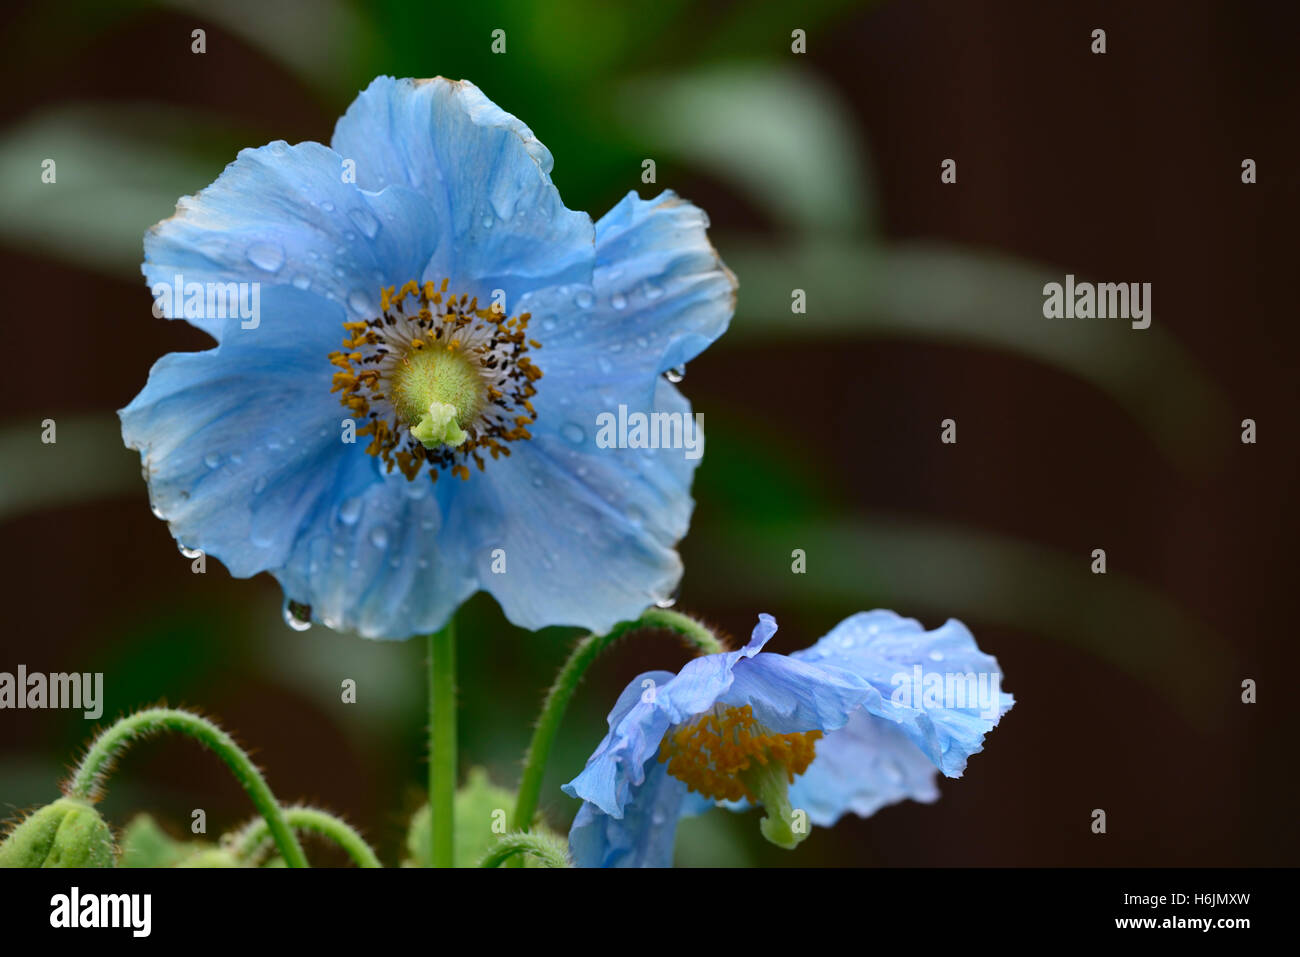 Meconopsis betonicifolia blue poppy Himalayan poppies flower flowers RM Floral shade shady shaded garden RM Floral - Stock Image